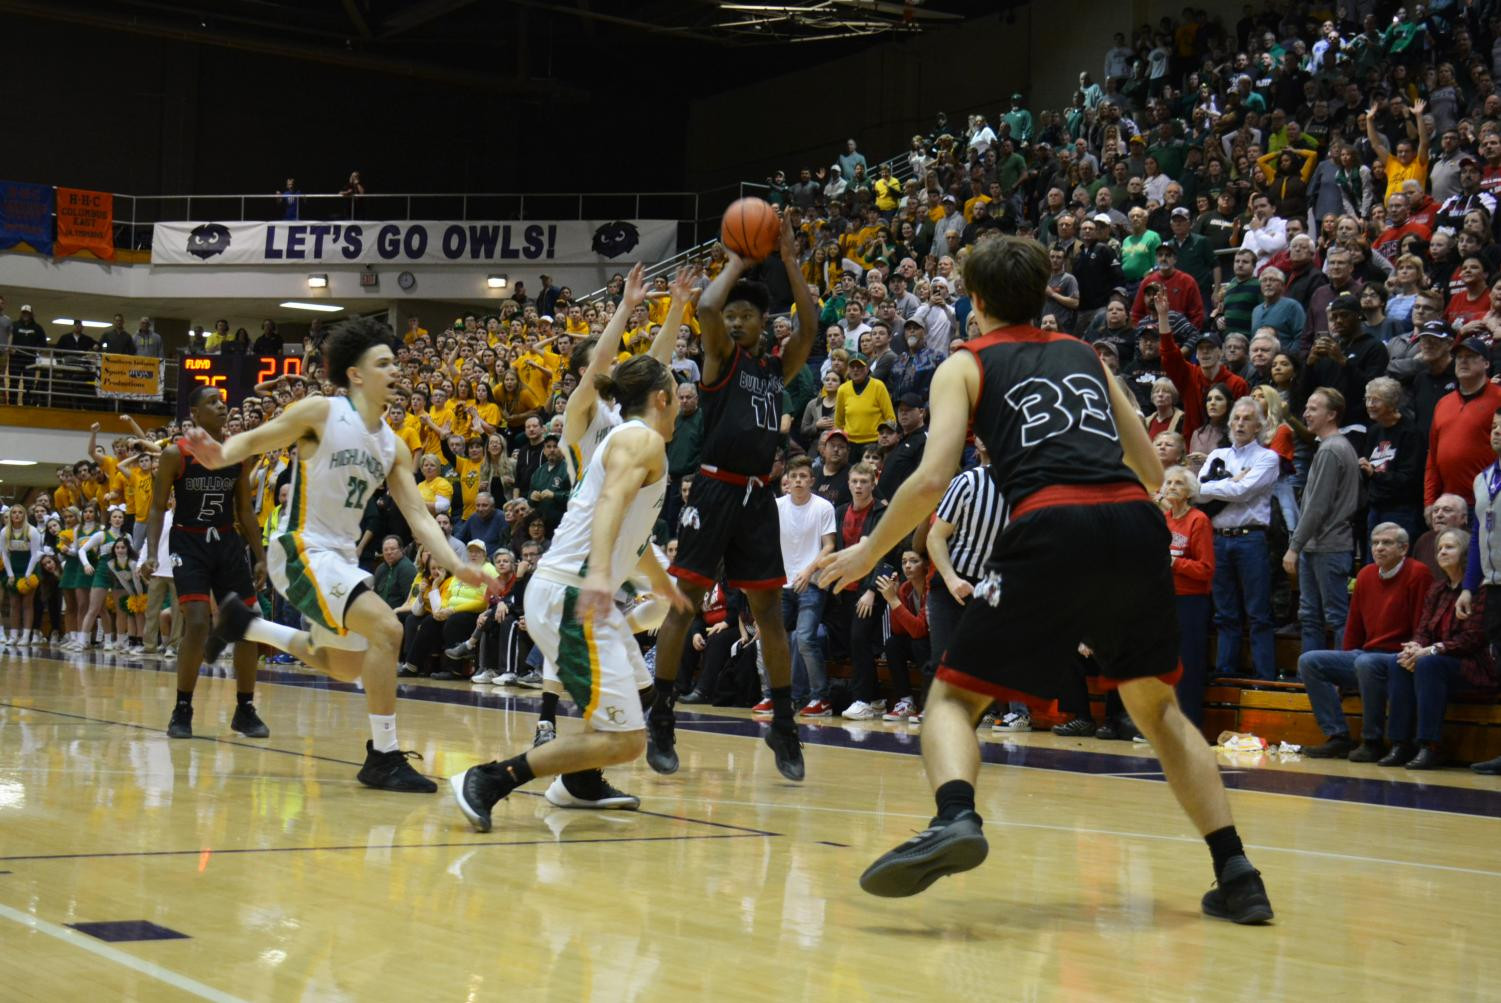 Stevenson pulls up for a three point with a second left in the game.